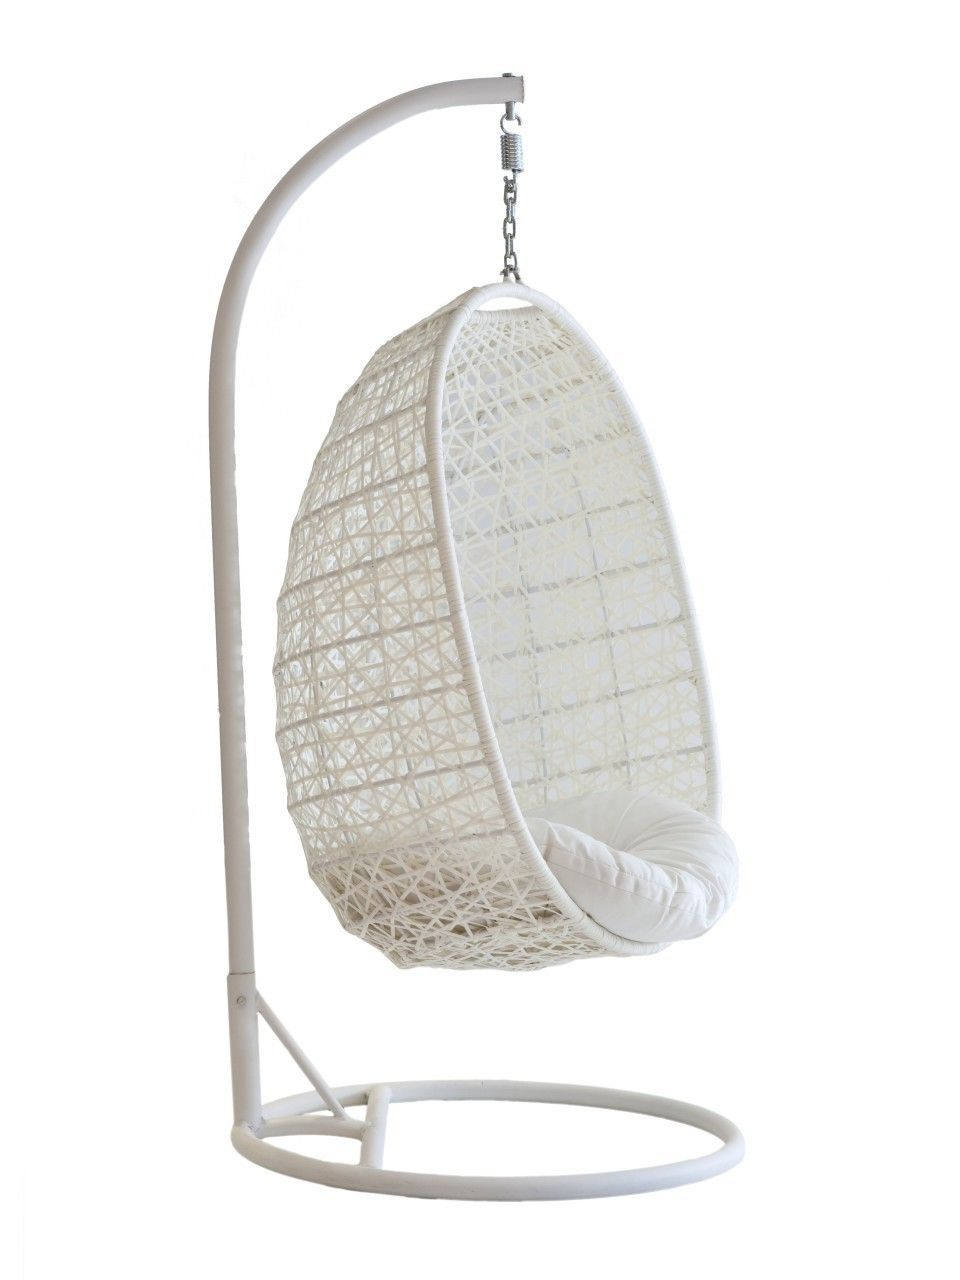 Furniture Charming White Viva Design Cora Hanging Chair Design With Stand For Beautiful Outdoor And Indoor Home Design Kursi Gantung Interior Desain Interior